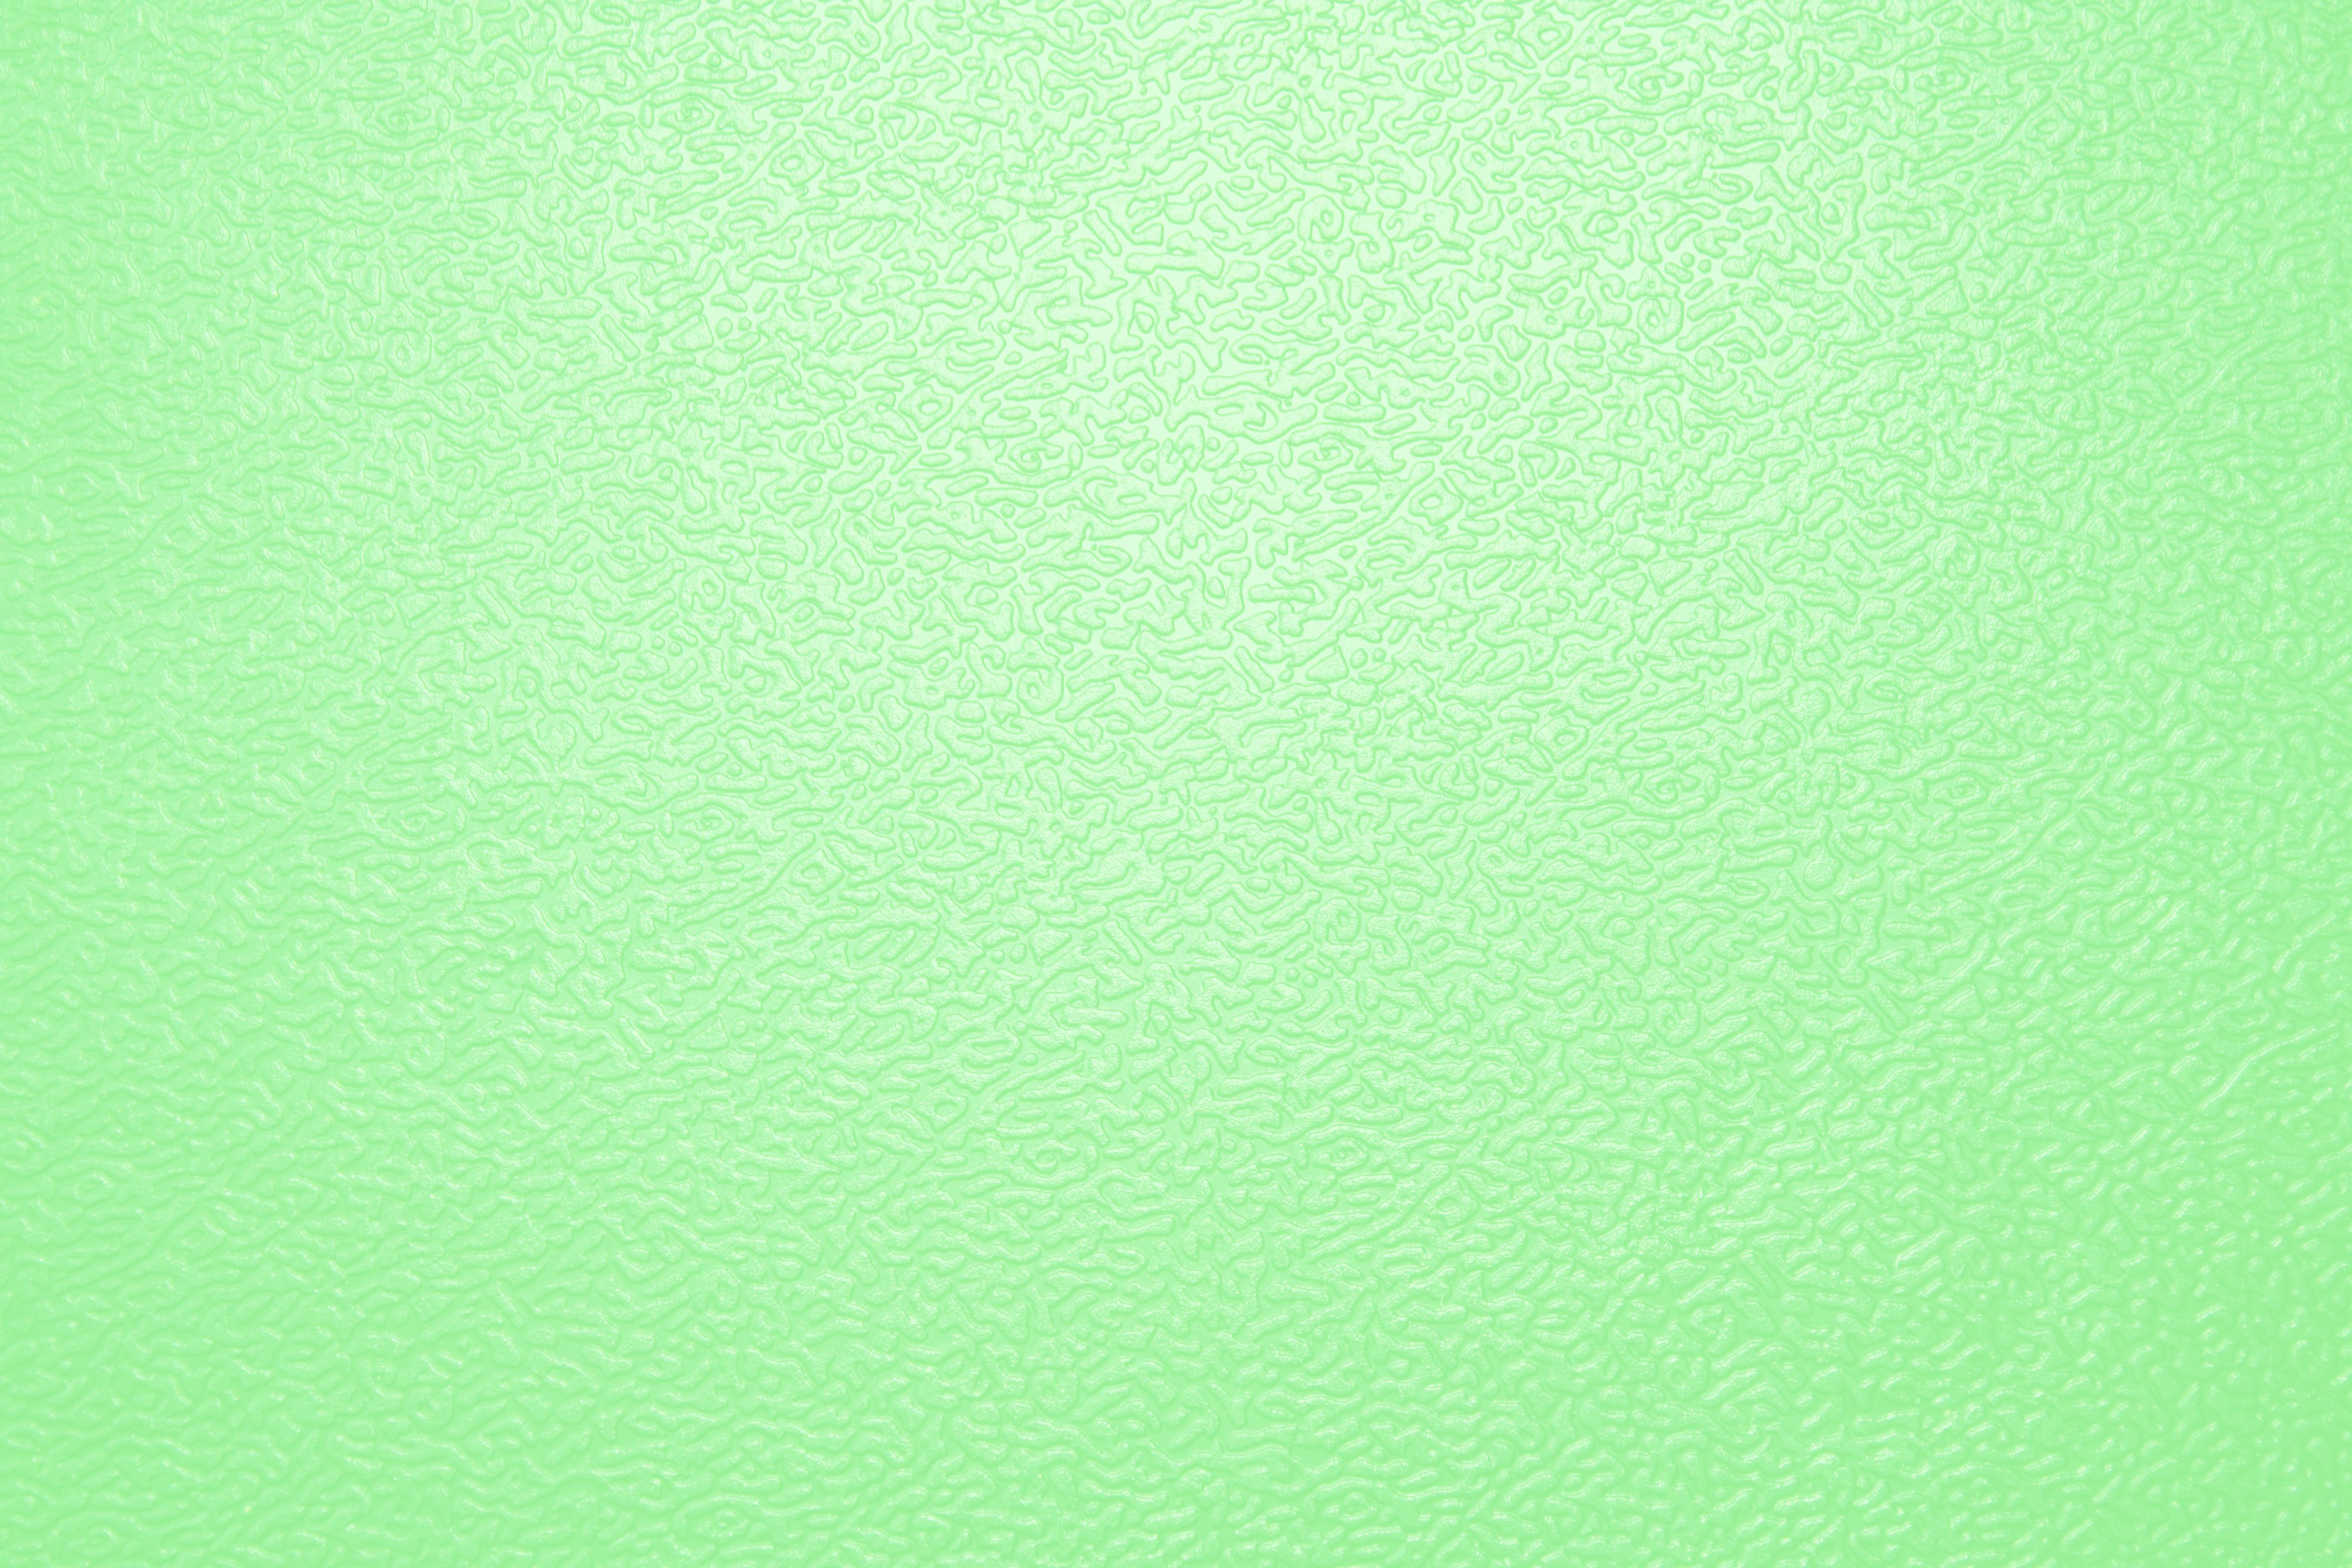 Textured Light Green Plastic Close Up Picture 3888x2592